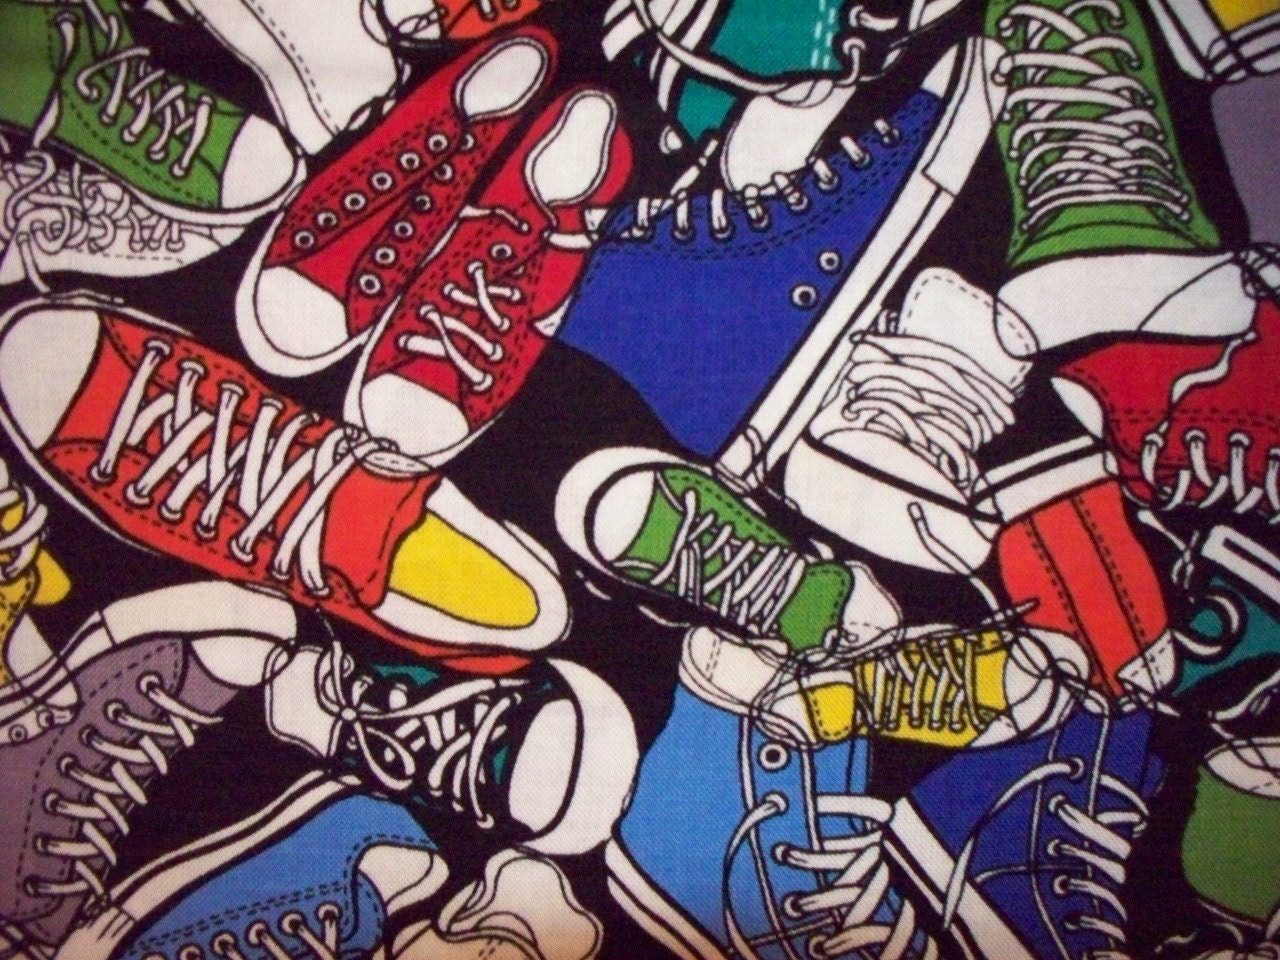 Tennis Shoe Print Fabric